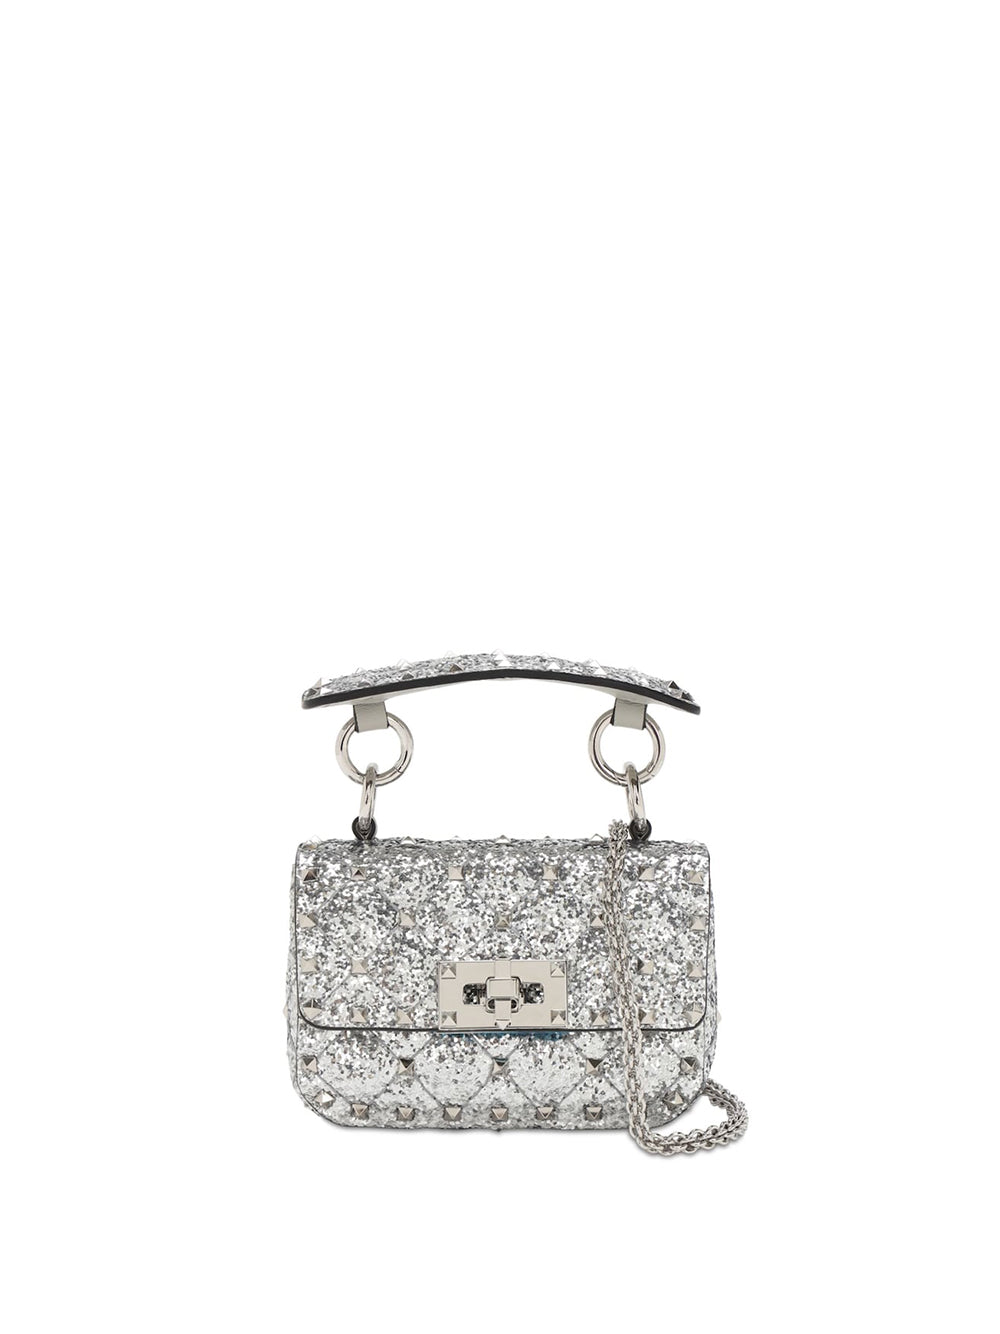 Micro Rockstud Spike Glitter Leather Bag - Silver